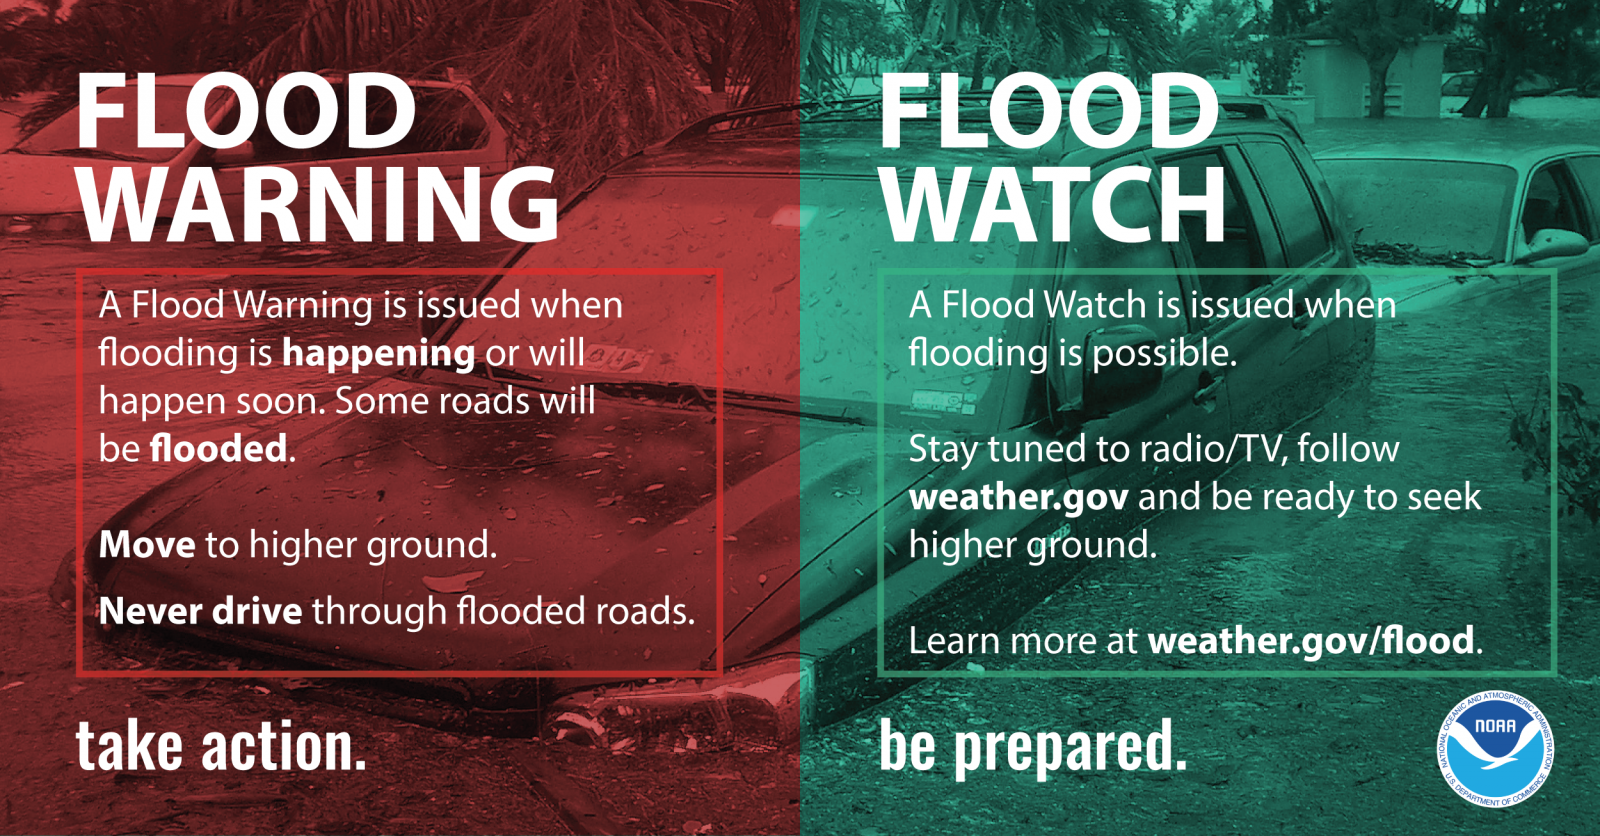 Flood Watch vs. Warning